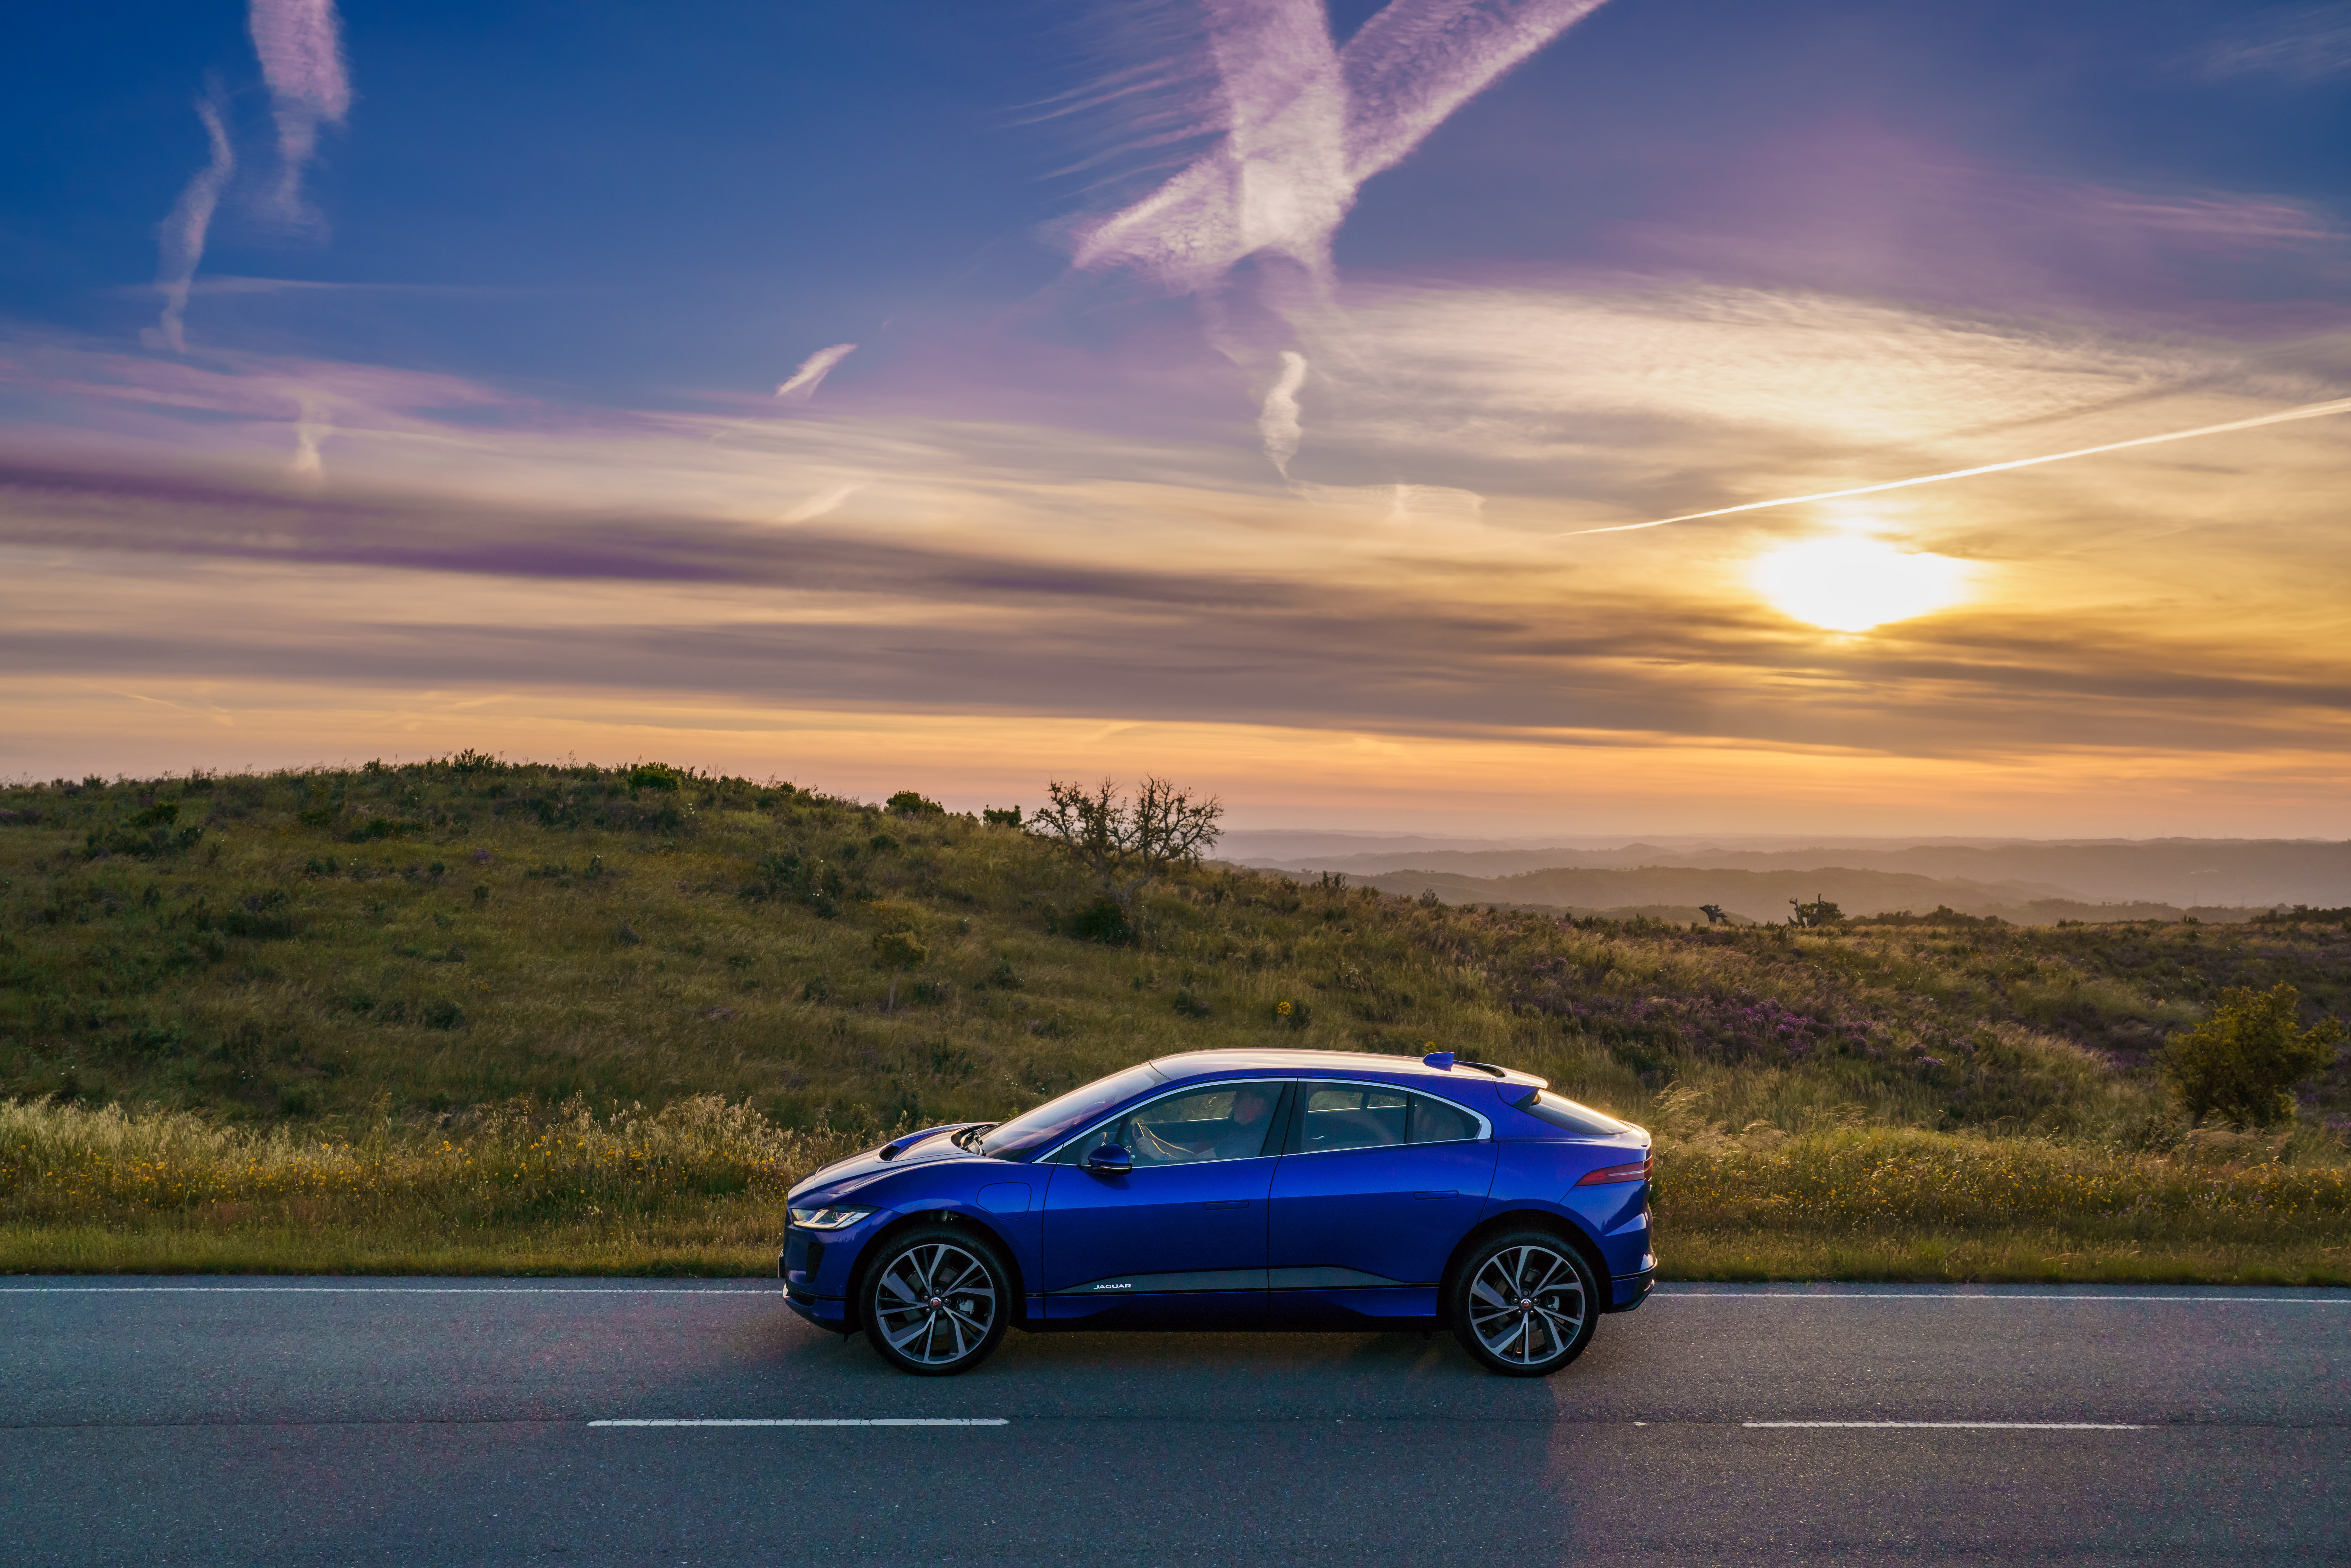 Jaguar I-PACE sunset